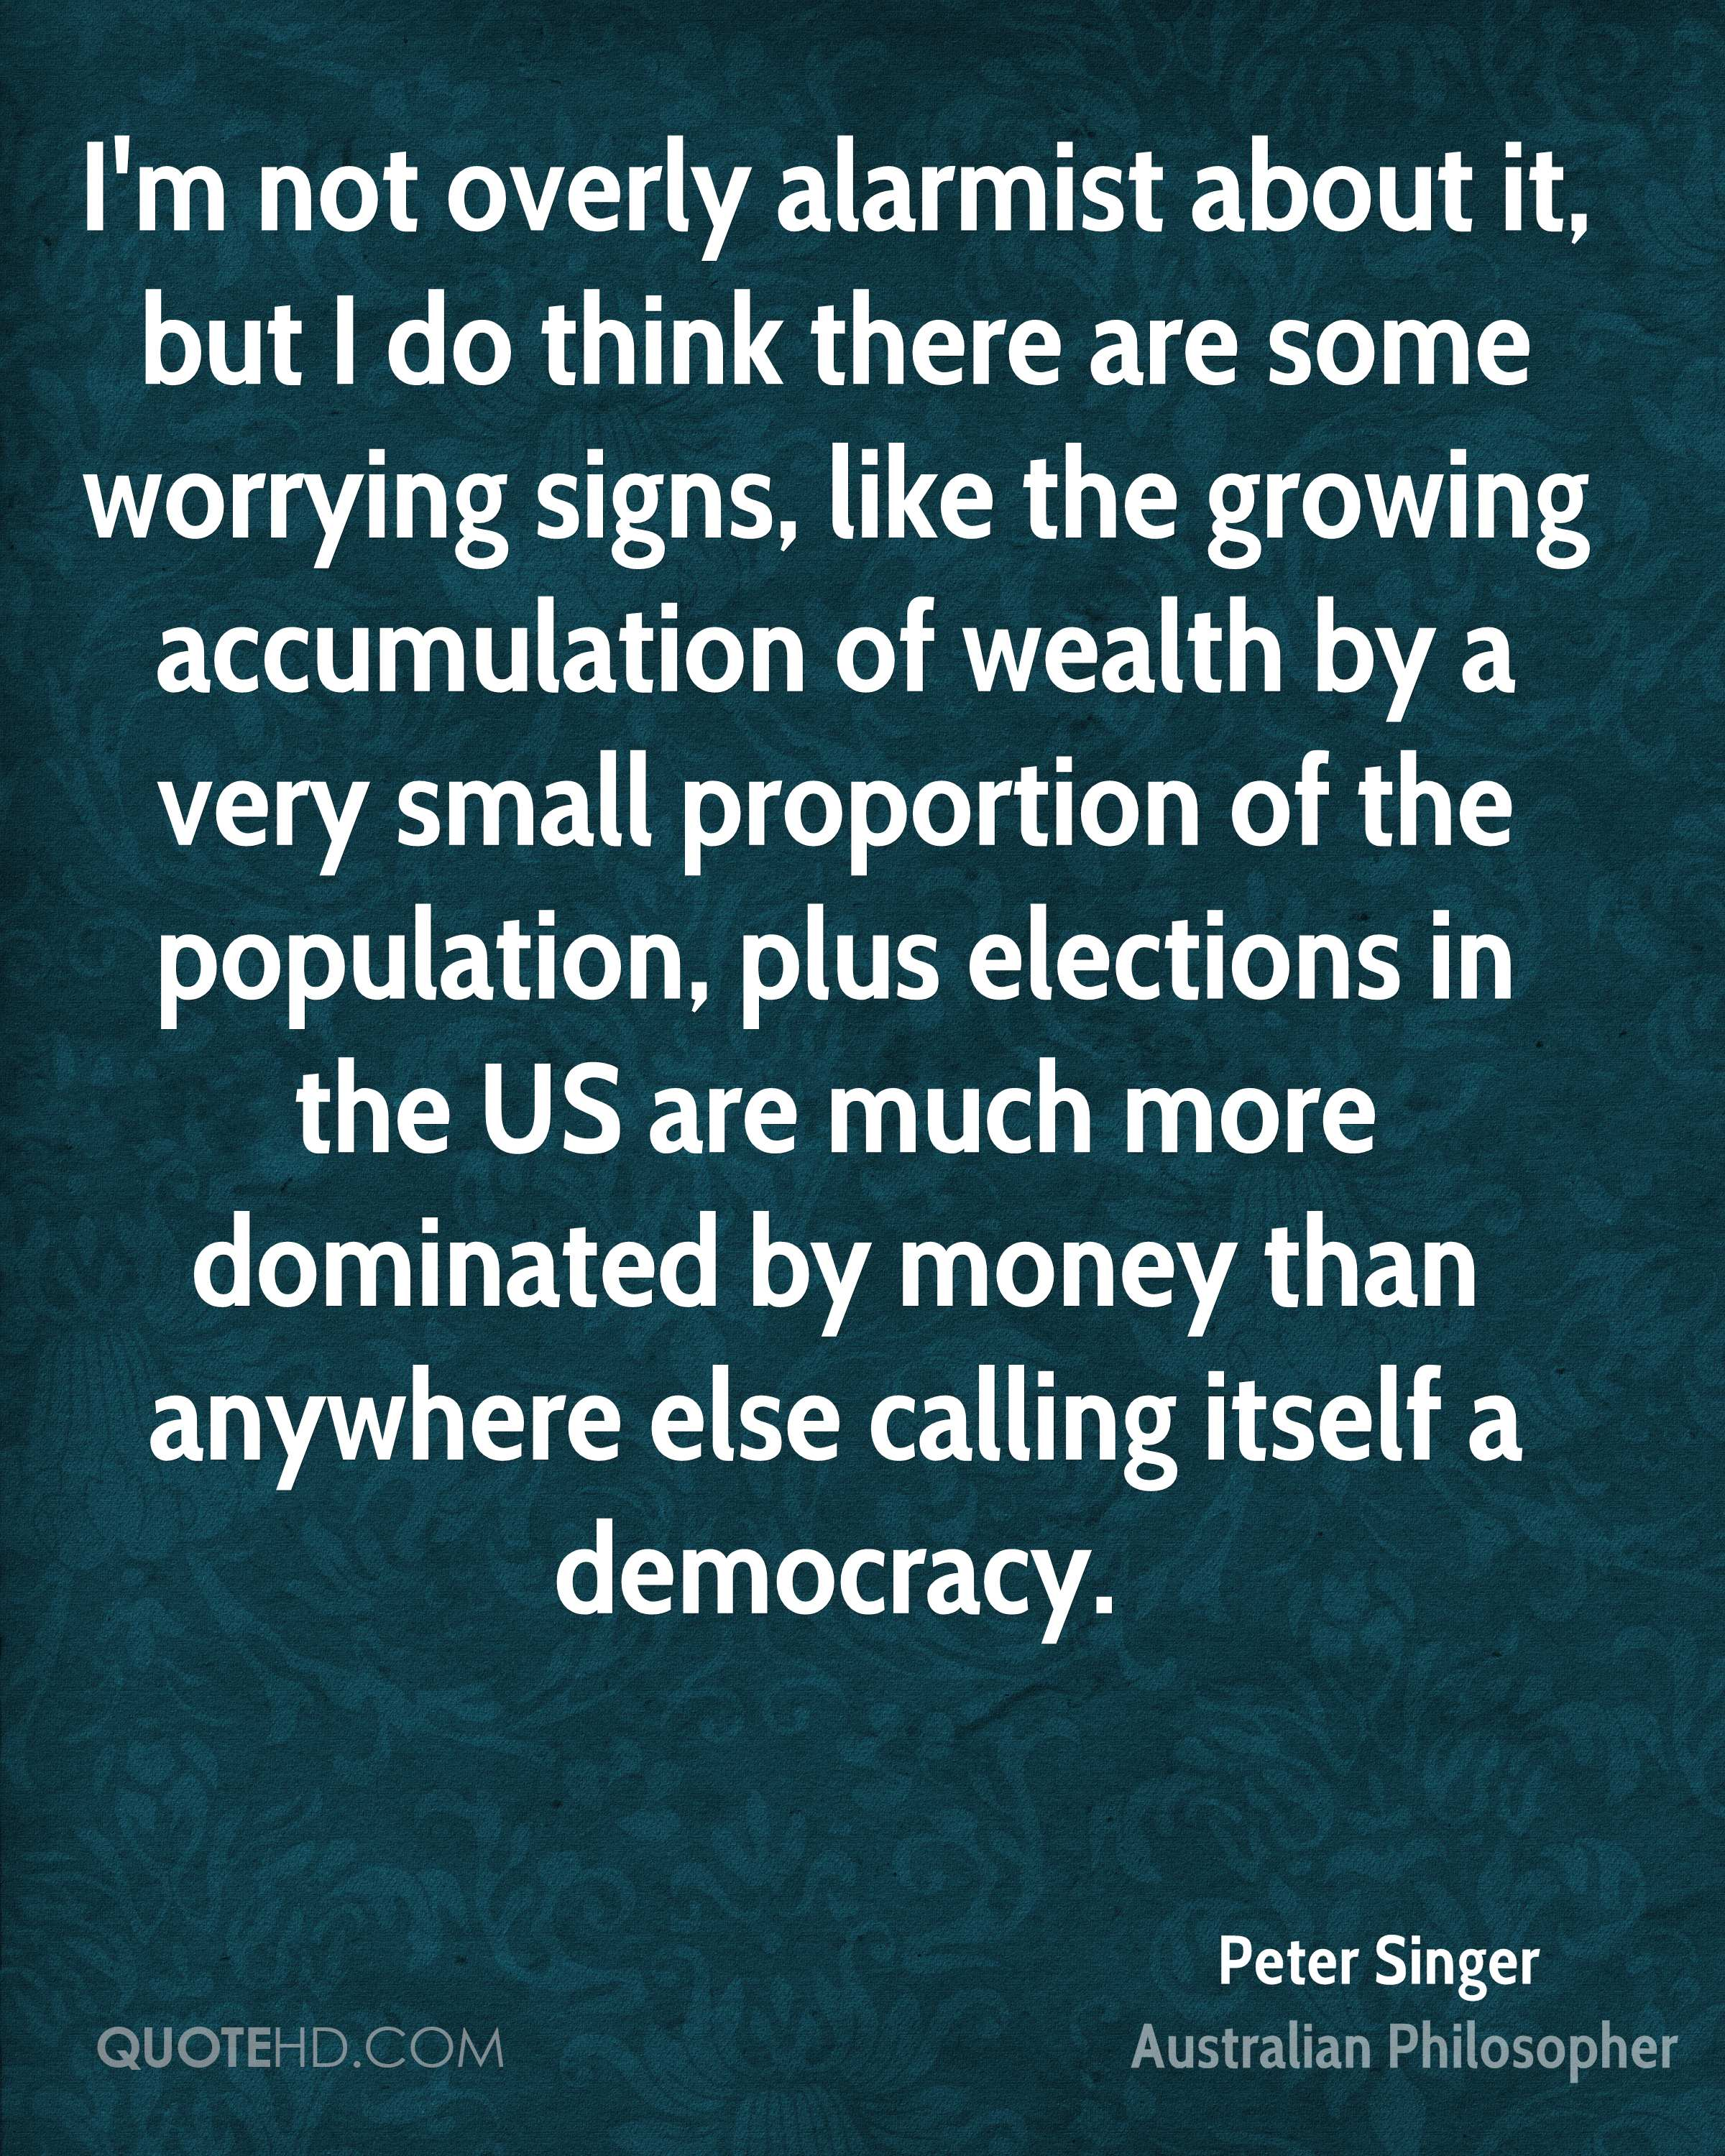 I'm not overly alarmist about it, but I do think there are some worrying signs, like the growing accumulation of wealth by a very small proportion of the population, plus elections in the US are much more dominated by money than anywhere else calling itself a democracy.